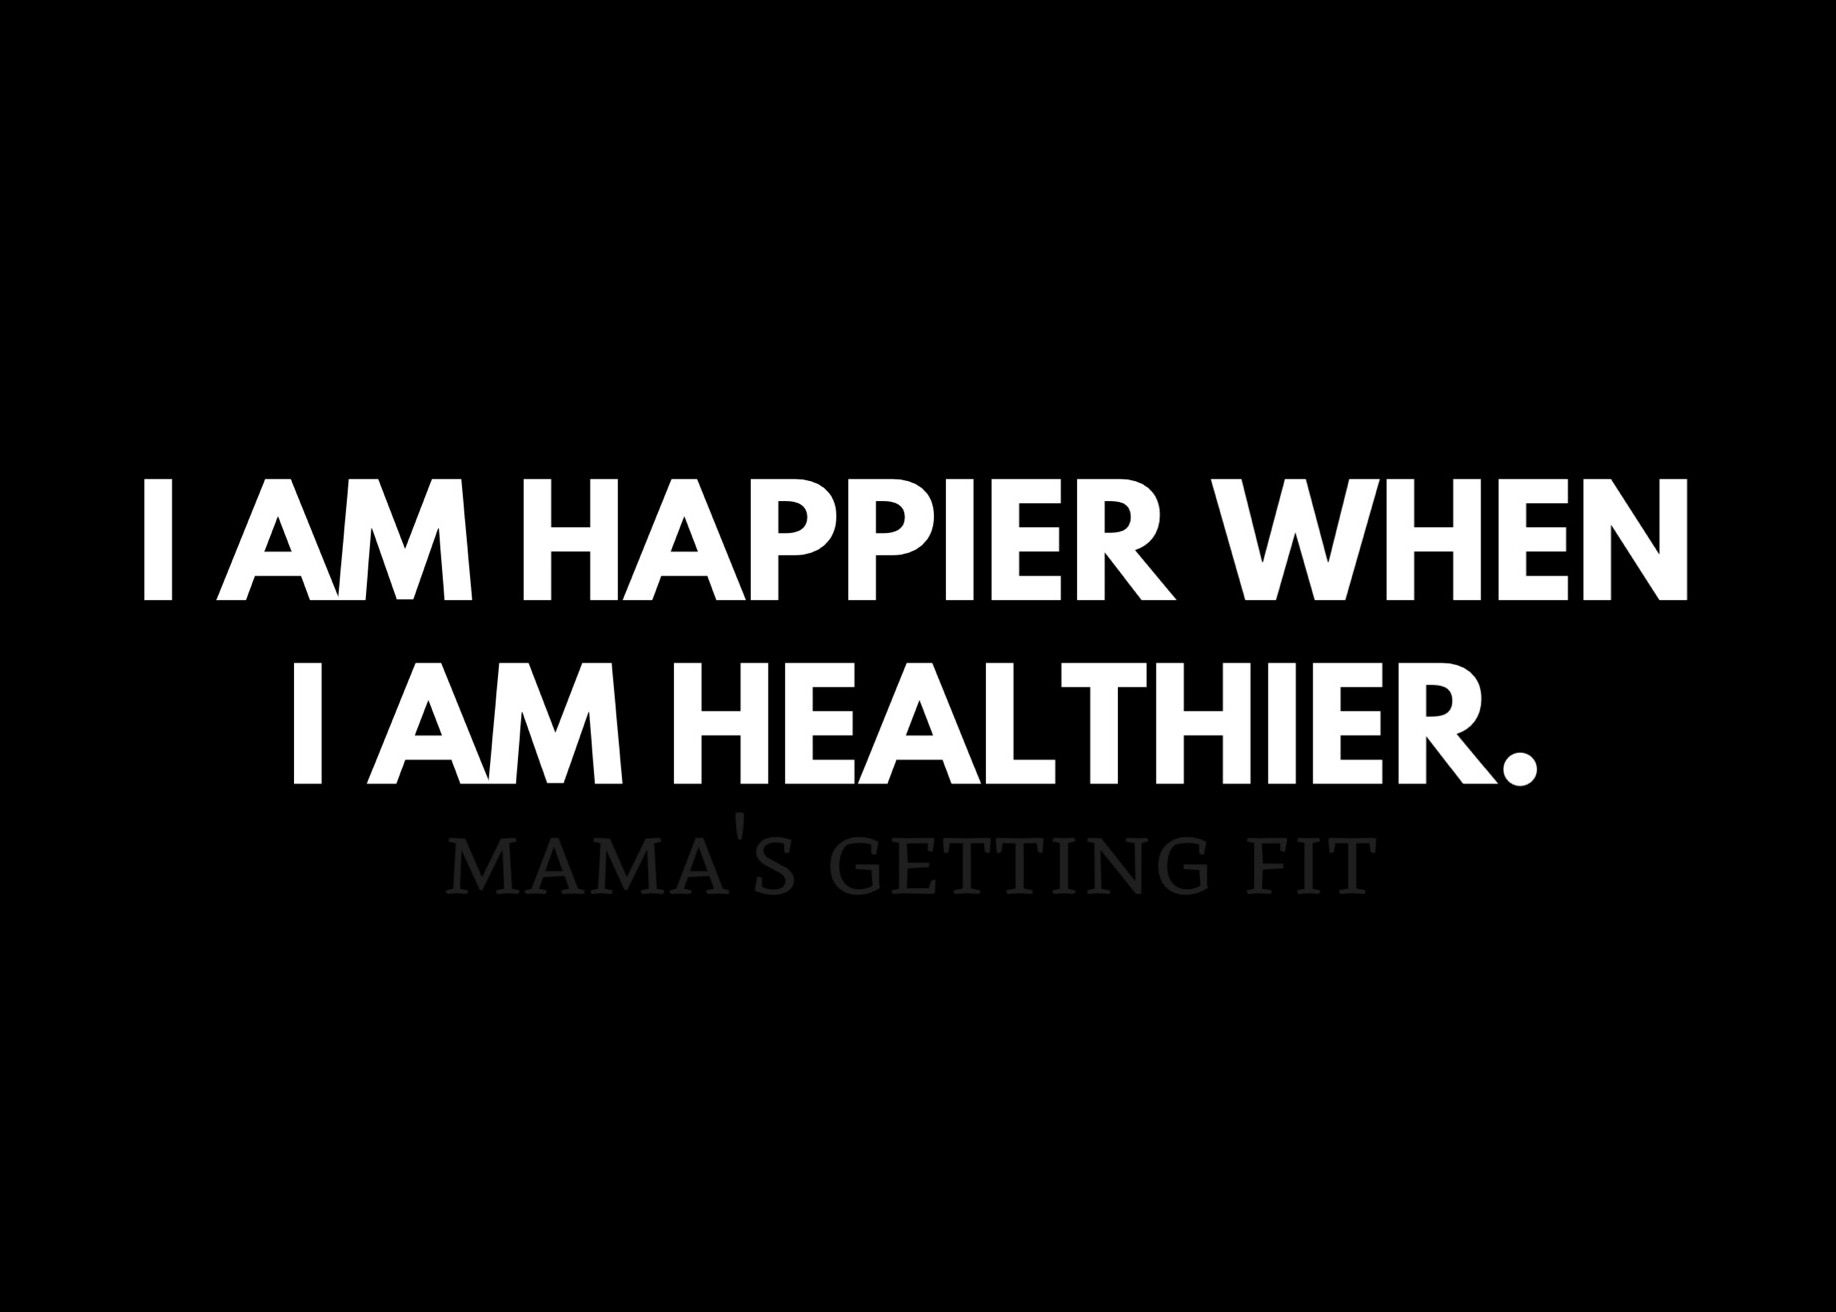 #Day72 I am happier when I am healthier. Never forget.